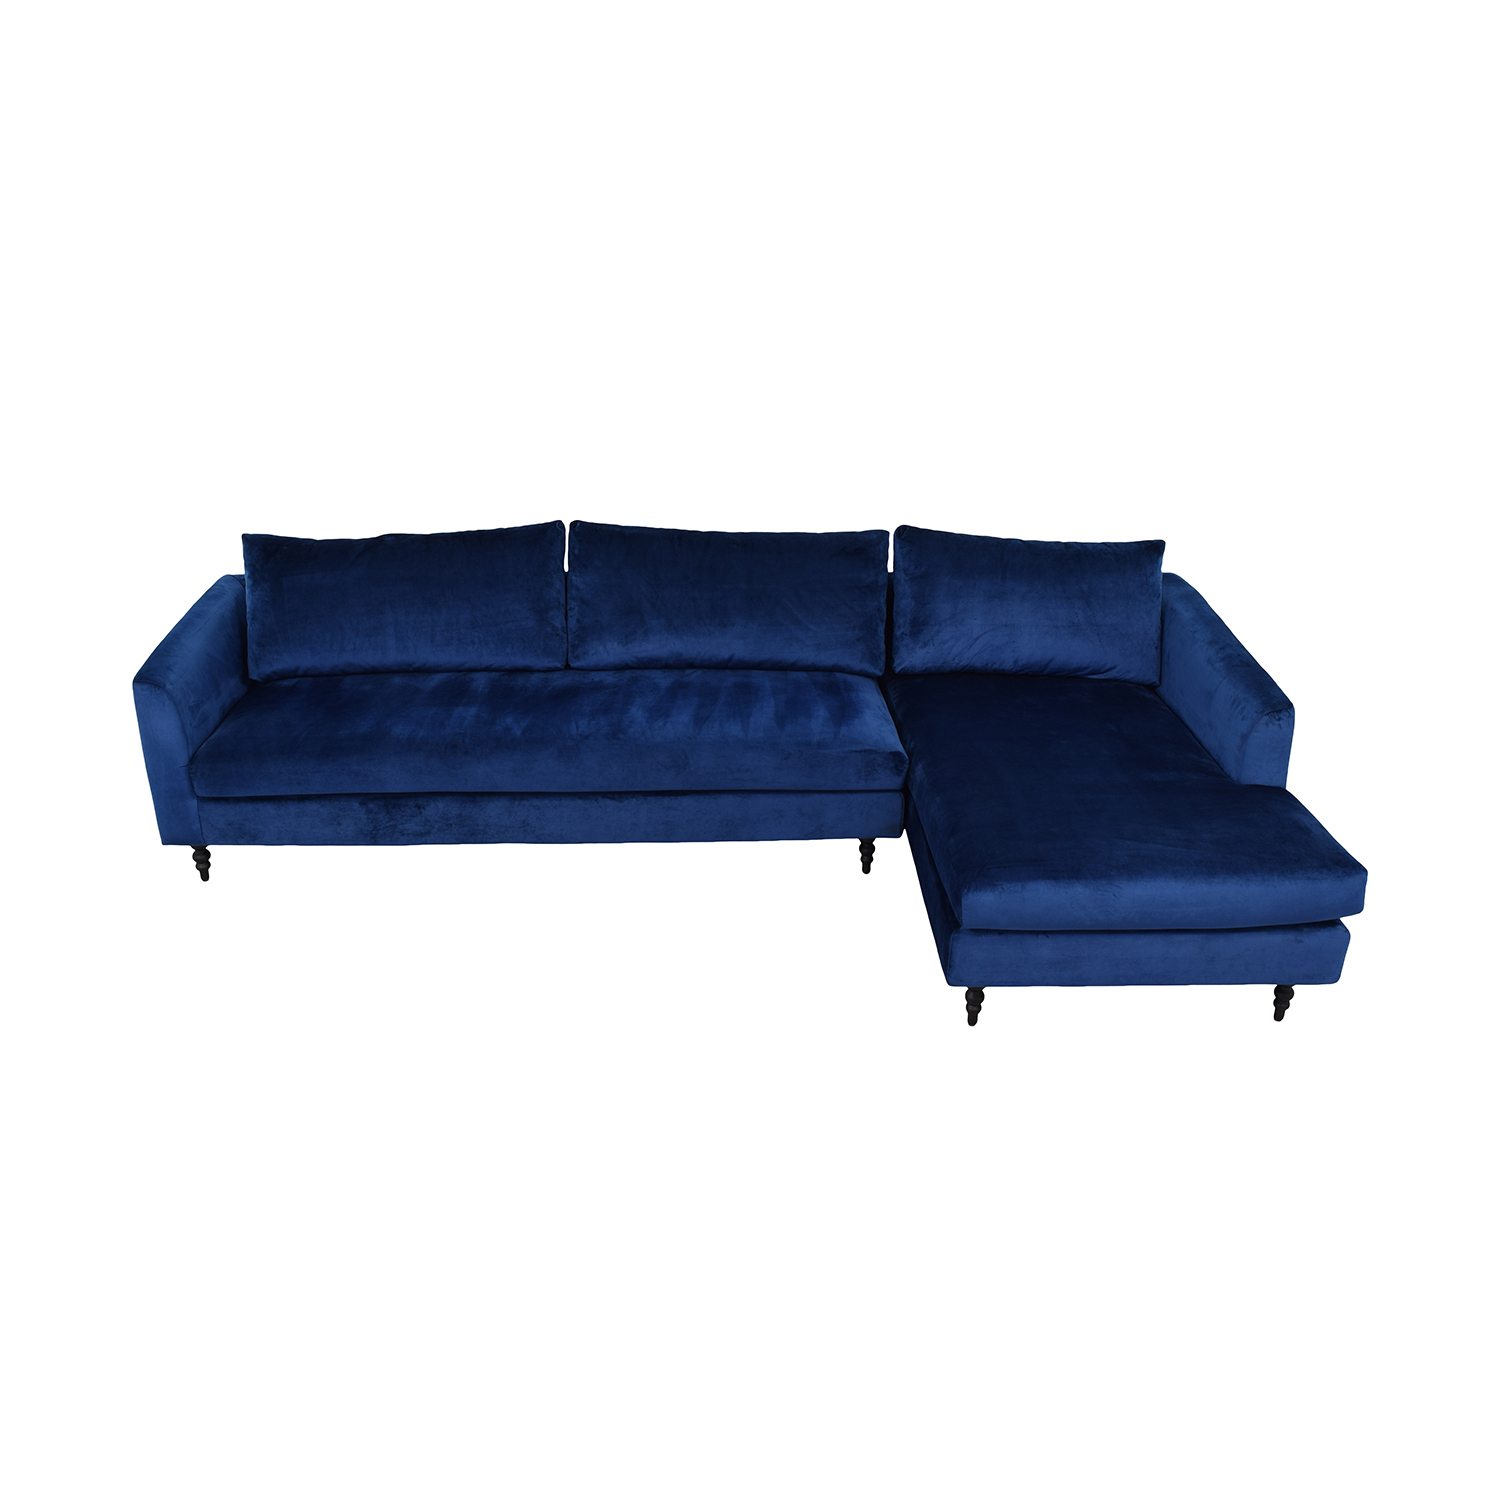 Owens Right Chaise Sectional coupon